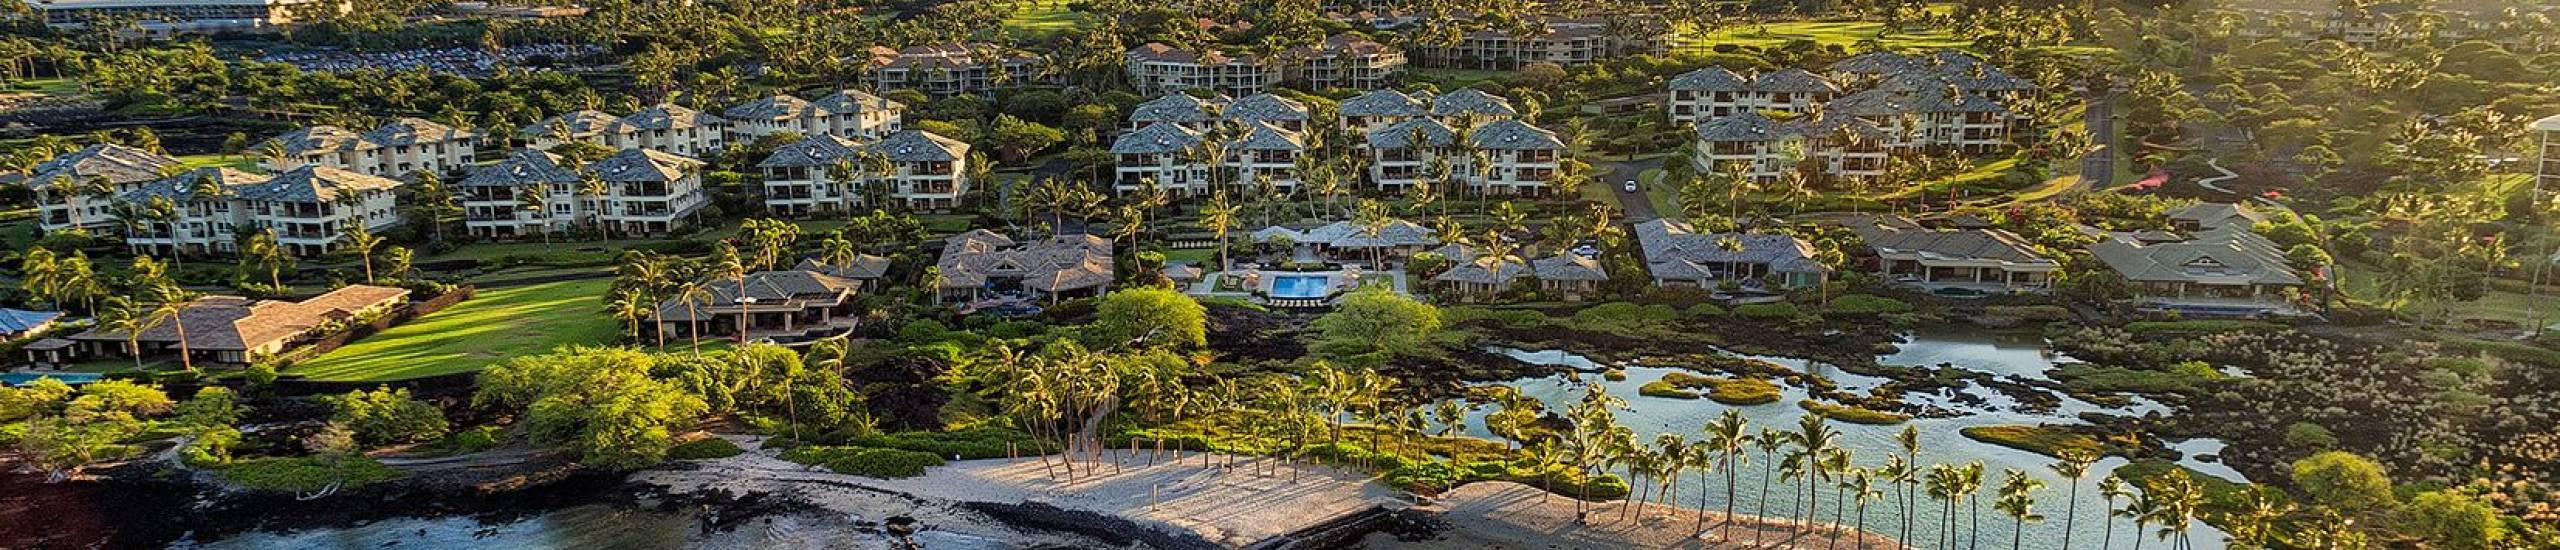 Homes and Condos at Waikoloa Beach Resort